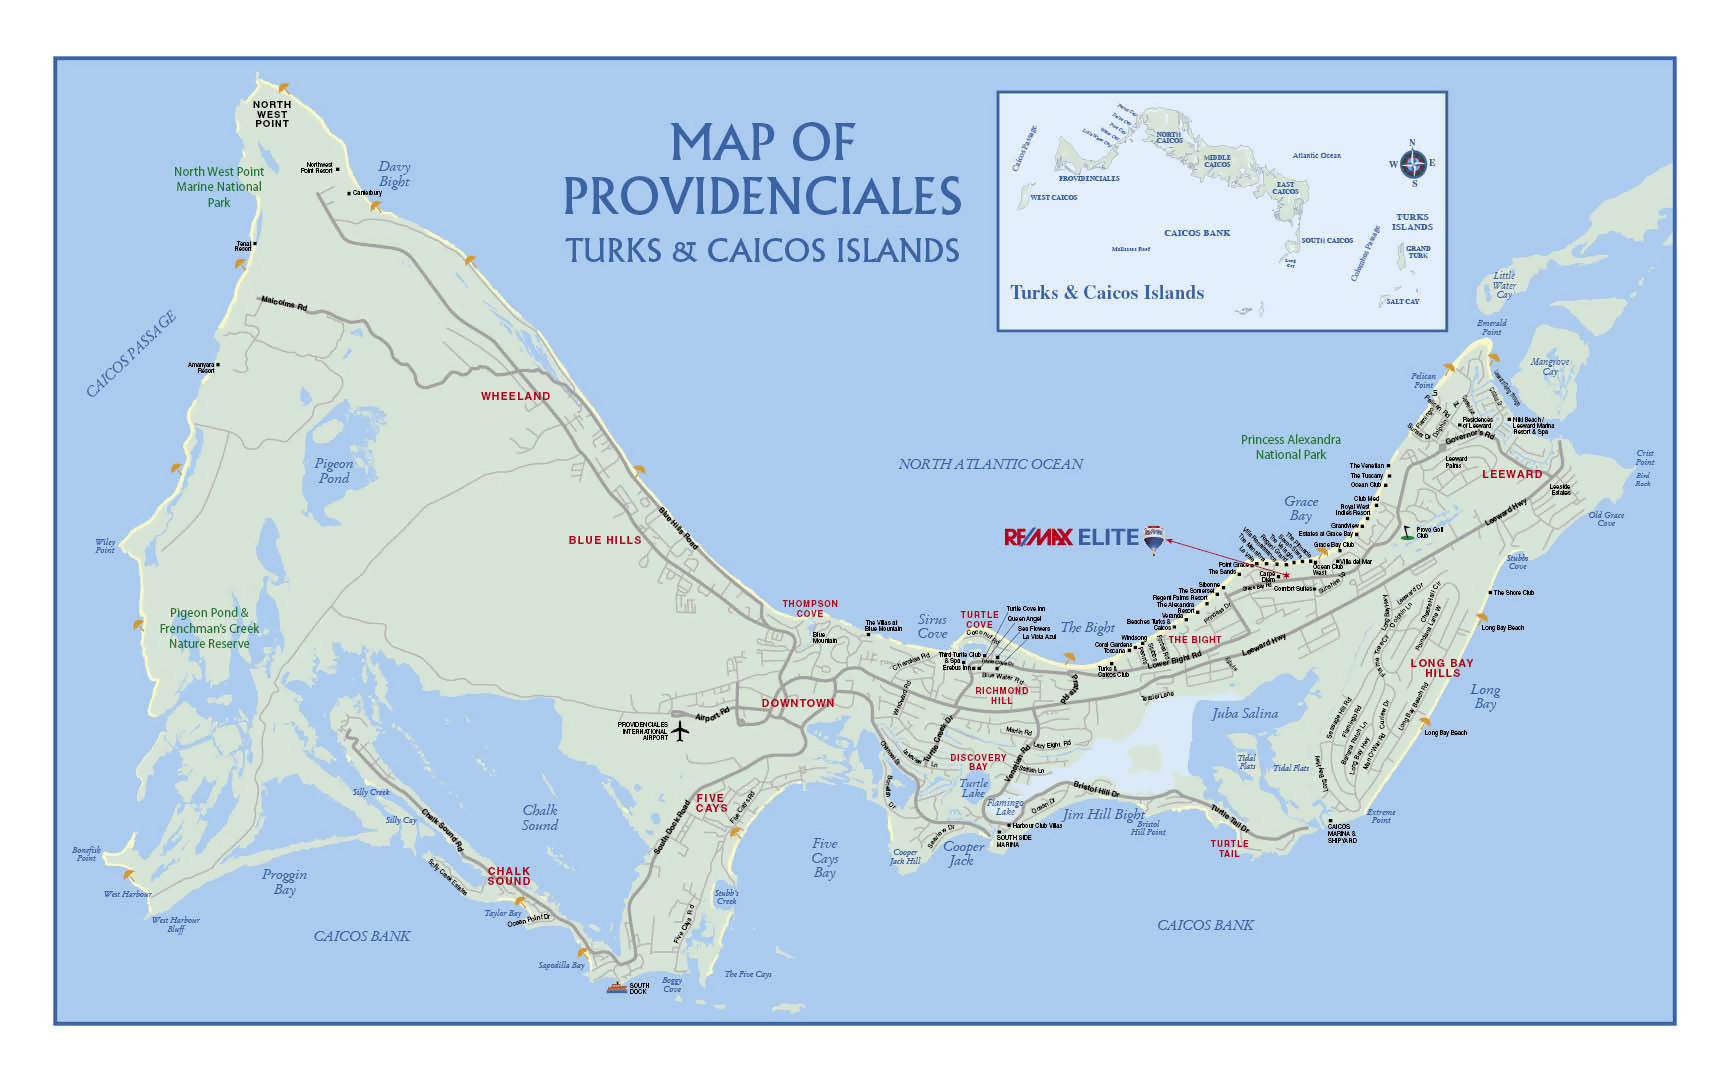 Large detailed road map of Providenciales Island, Turks and ... on mr map, gsf map, great britain map, lux airport map, wales map, uk map, united kingdom map, gn map, gh map, ae map, et map, world map, cx map, gbc map, england map, ocsg map, gz map, france map,